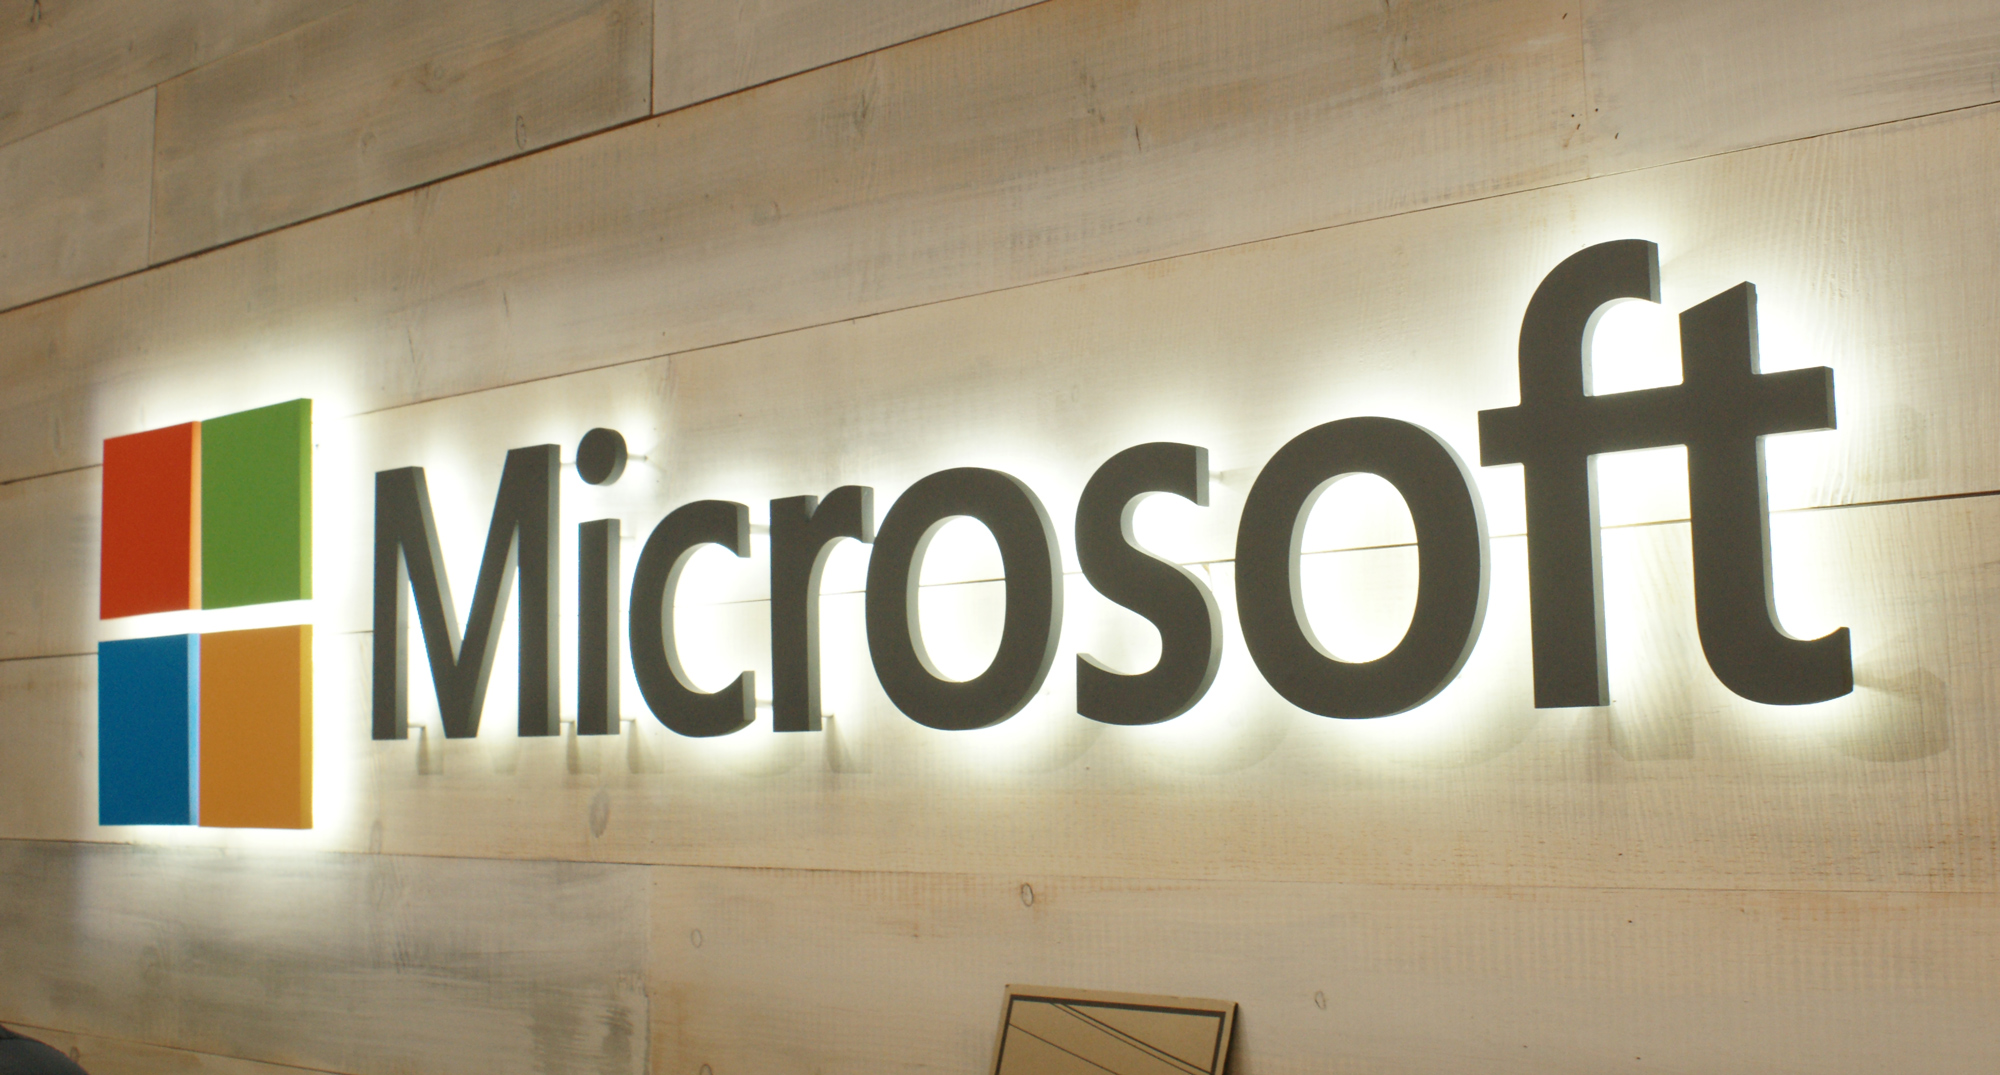 Microsoft Corporation (NASDAQ:MSFT) Launches Azure IoT Platform Publically To Collect Data On a Broa...